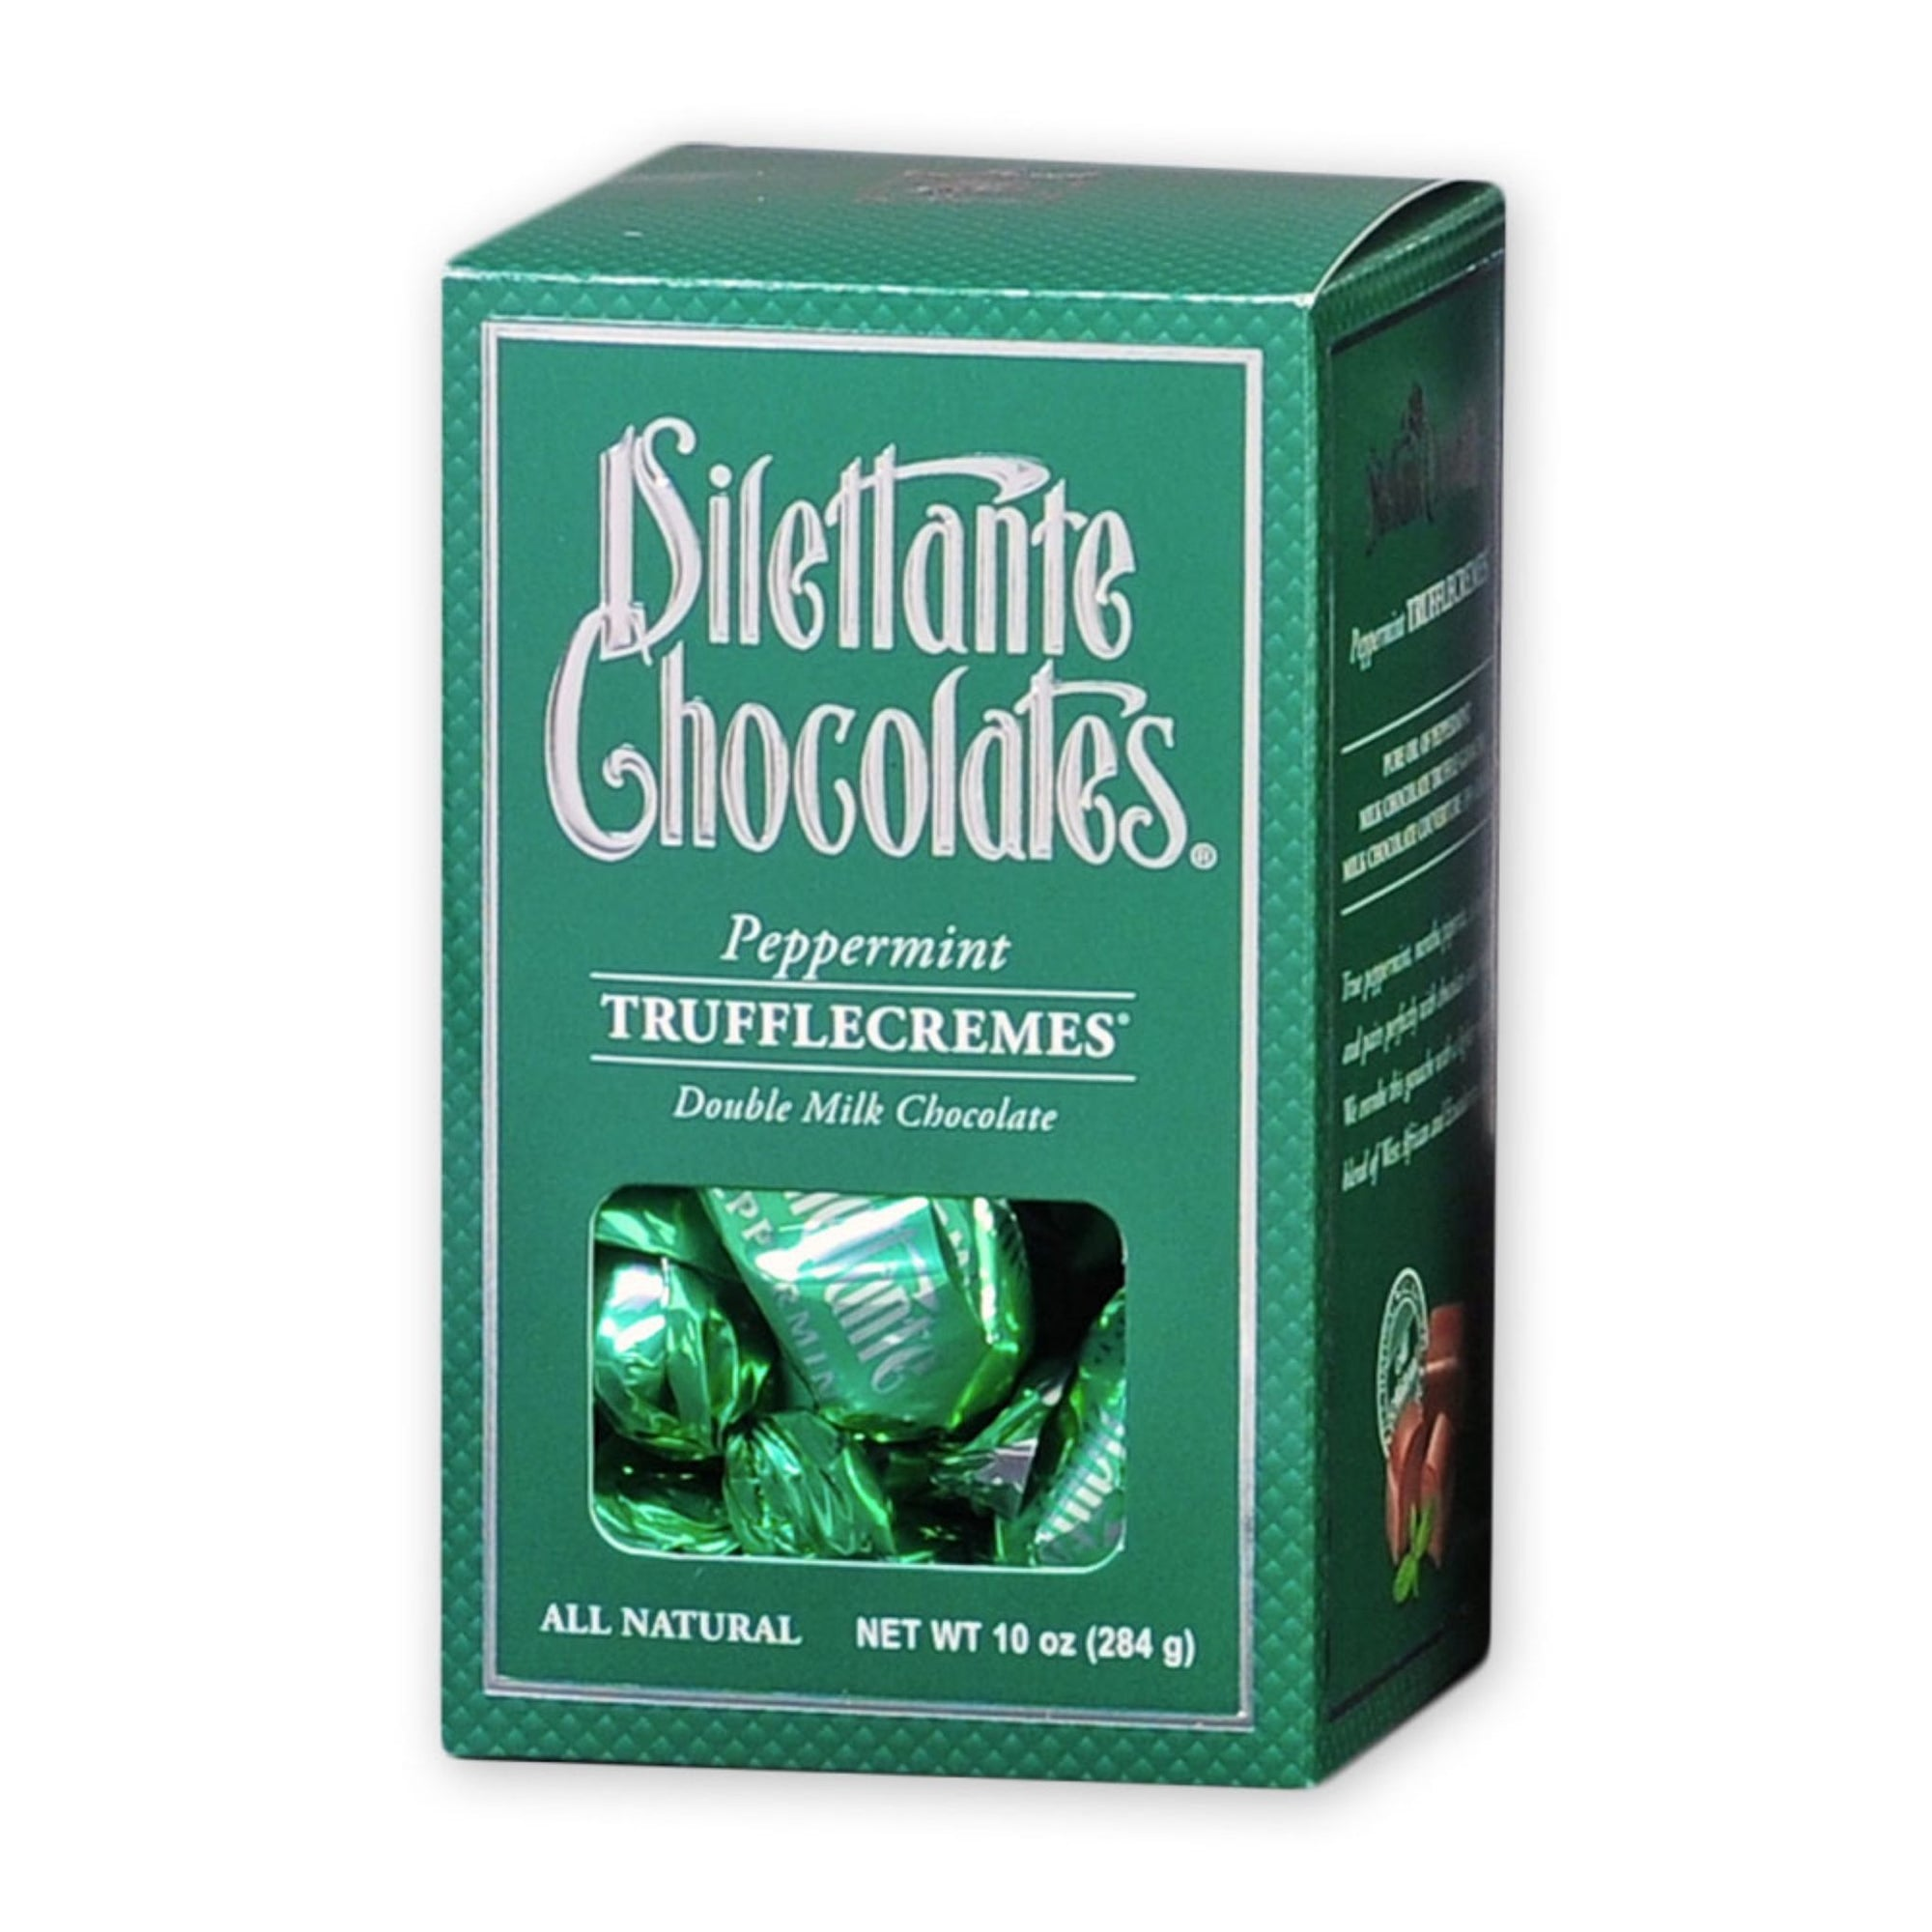 Dilettante Chocolates Peppermint TruffleCremes Coated in Double Milk Chocolate 10-Ounce Gift Box